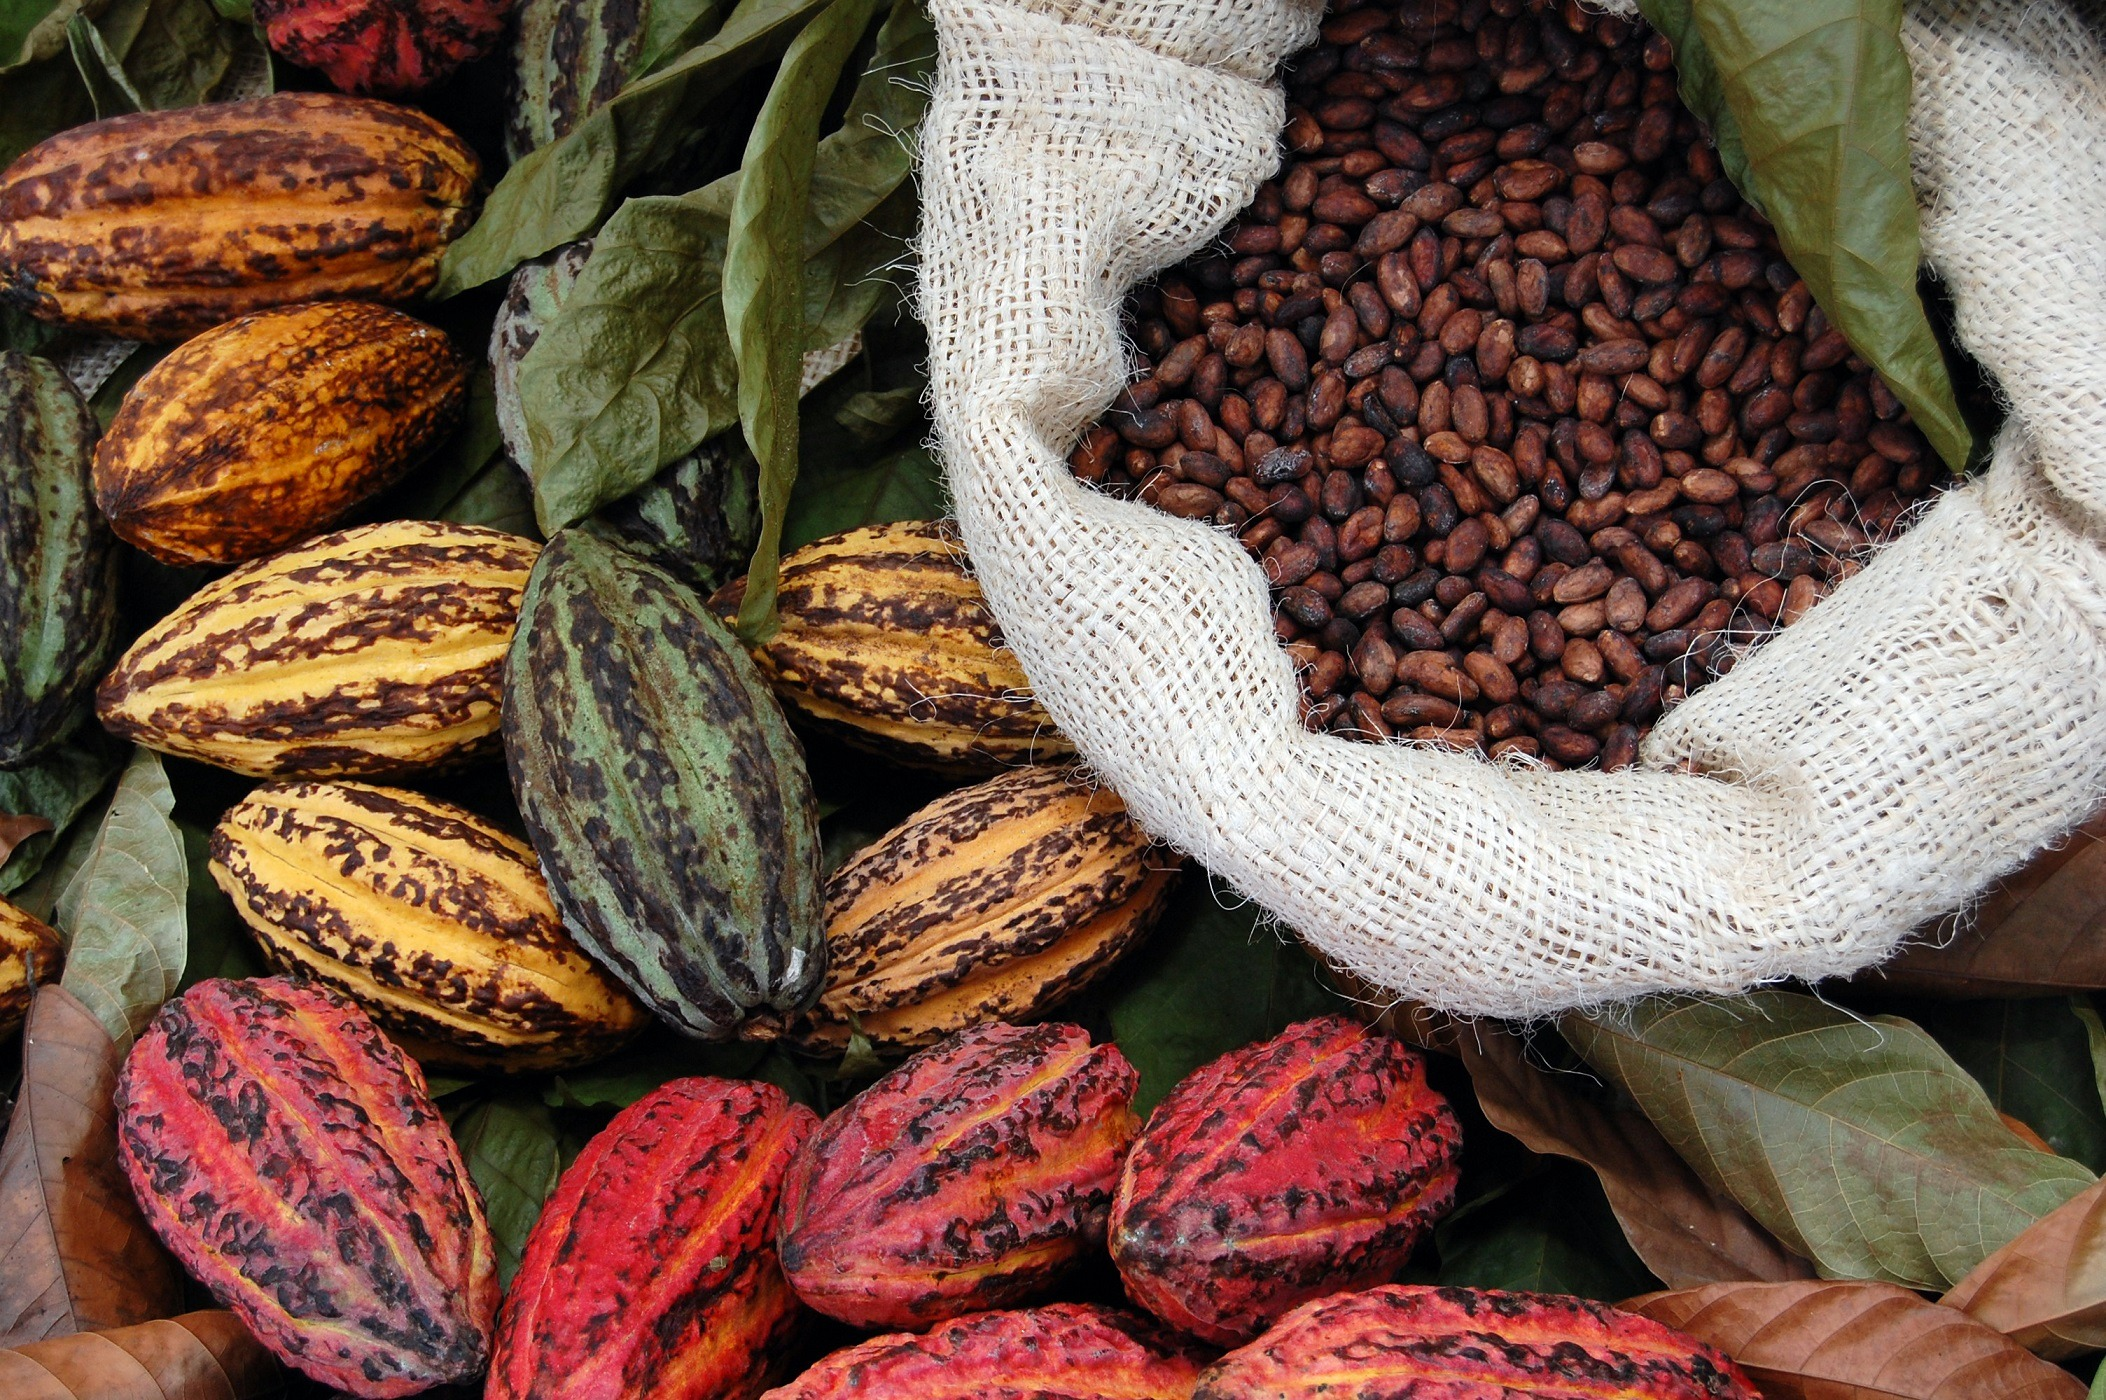 Cocoa beans in a bag with fresh pods next to it